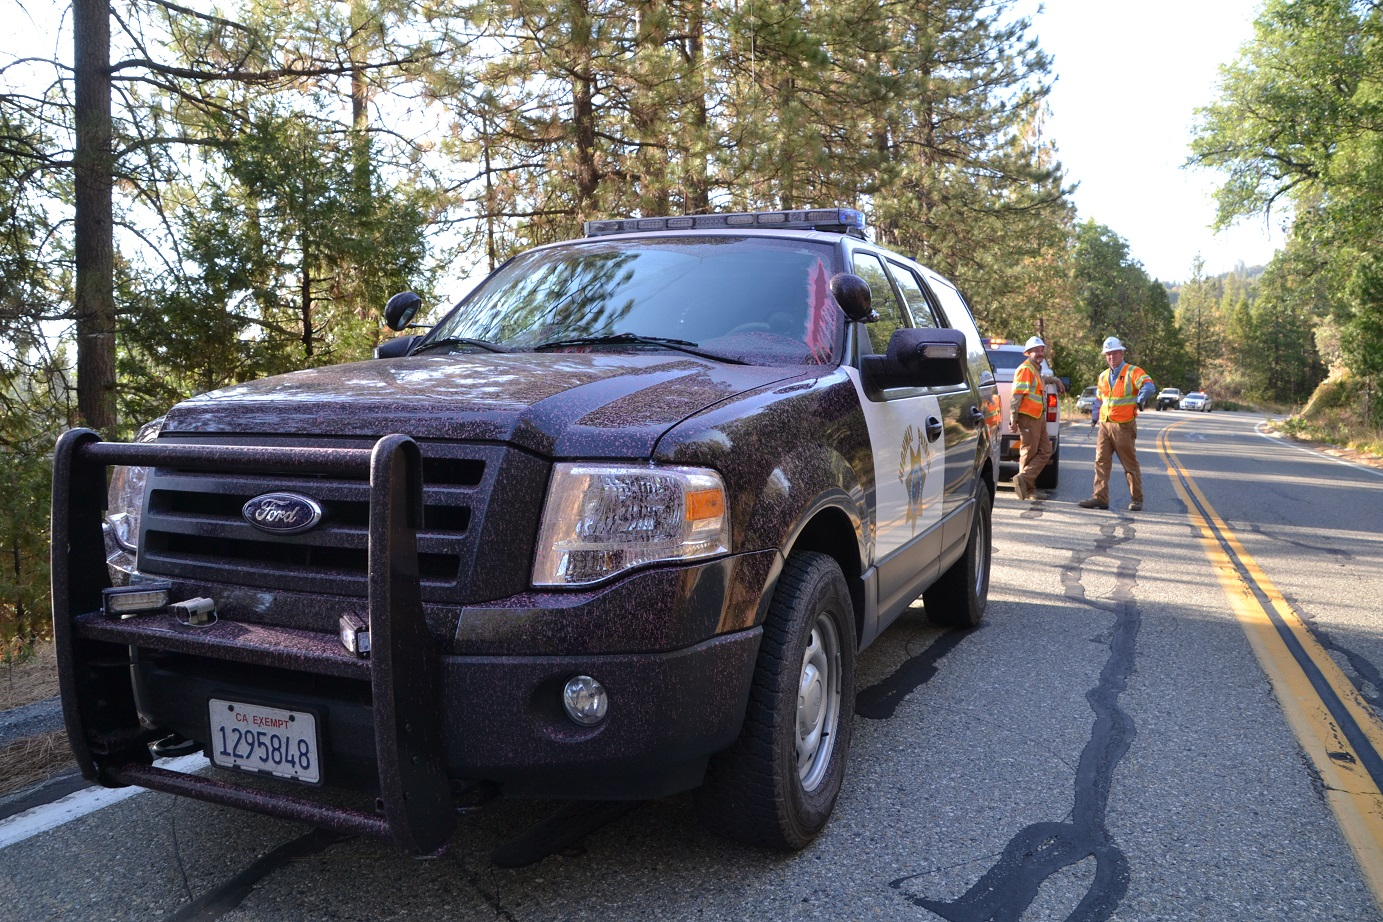 CHP covered with retardant